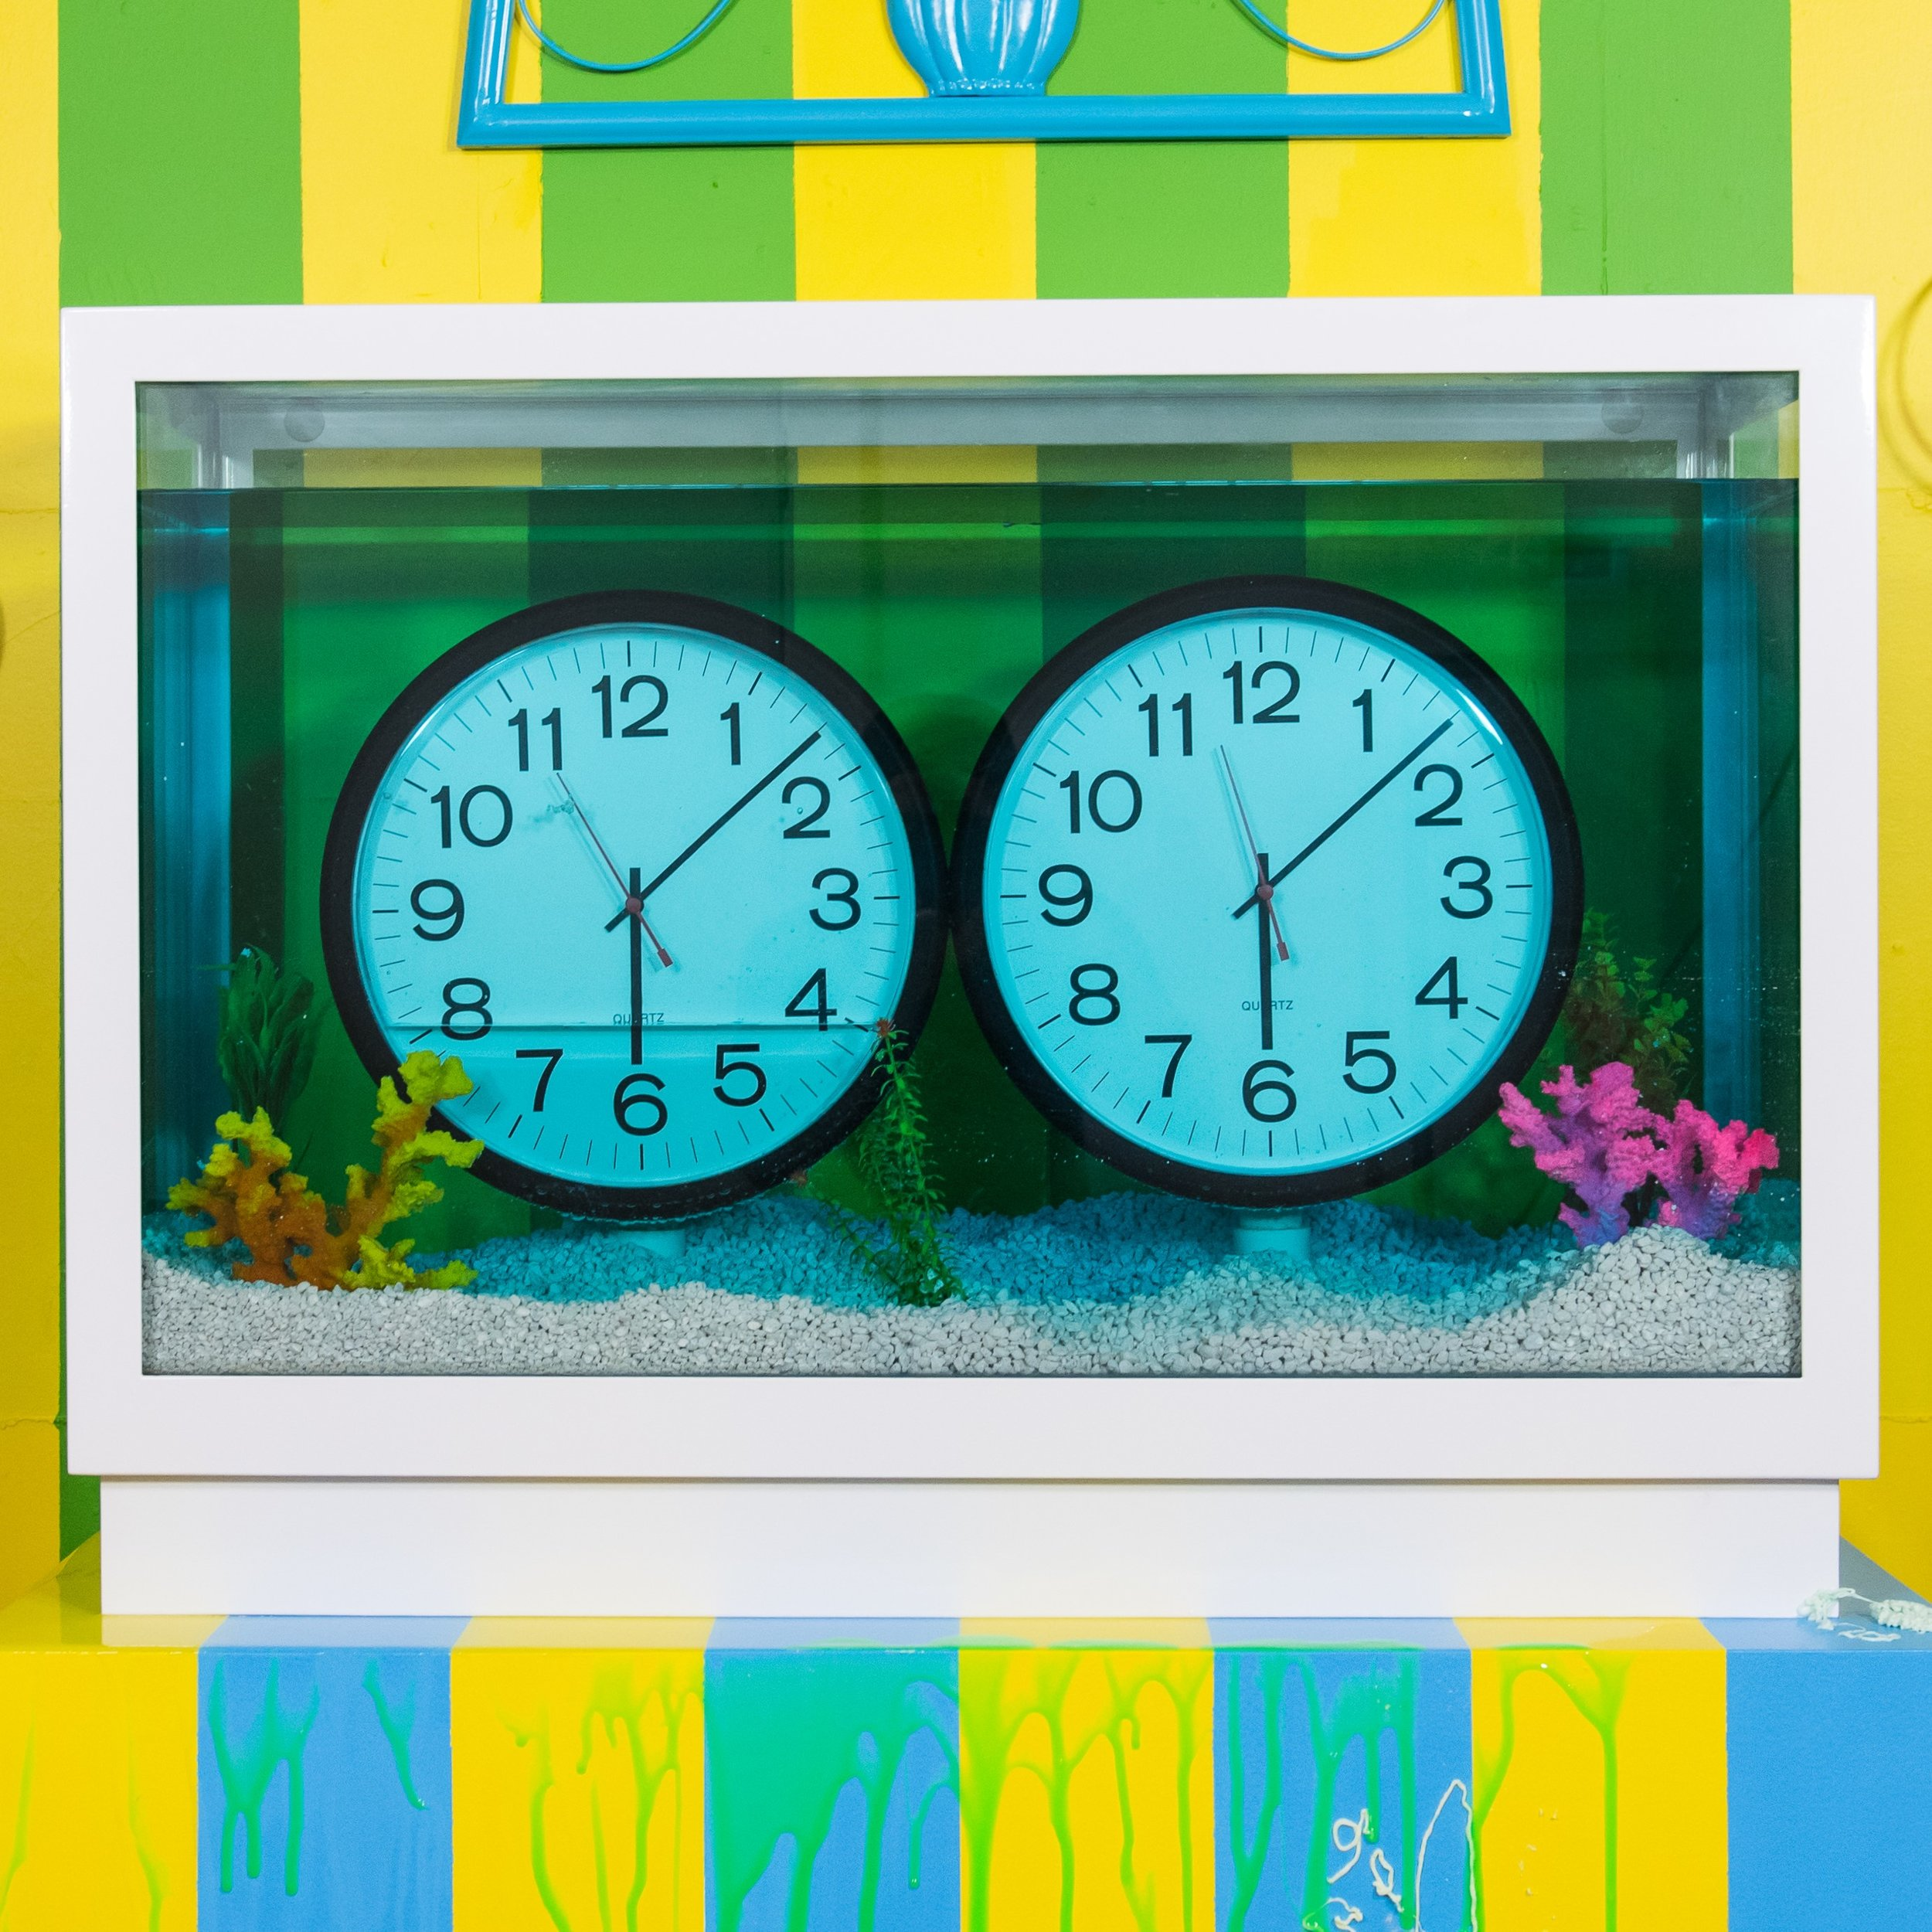 "I die for all mysterious things. (after Félix González-Torres and Damien Hirst)   2018  clocks, glass tank, powder coated steel frame, pipes, spray paint, wiring, batteries, switch, water, food coloring, aquarium gravel, fake plants and coral  28"" x 40"" x 13"""